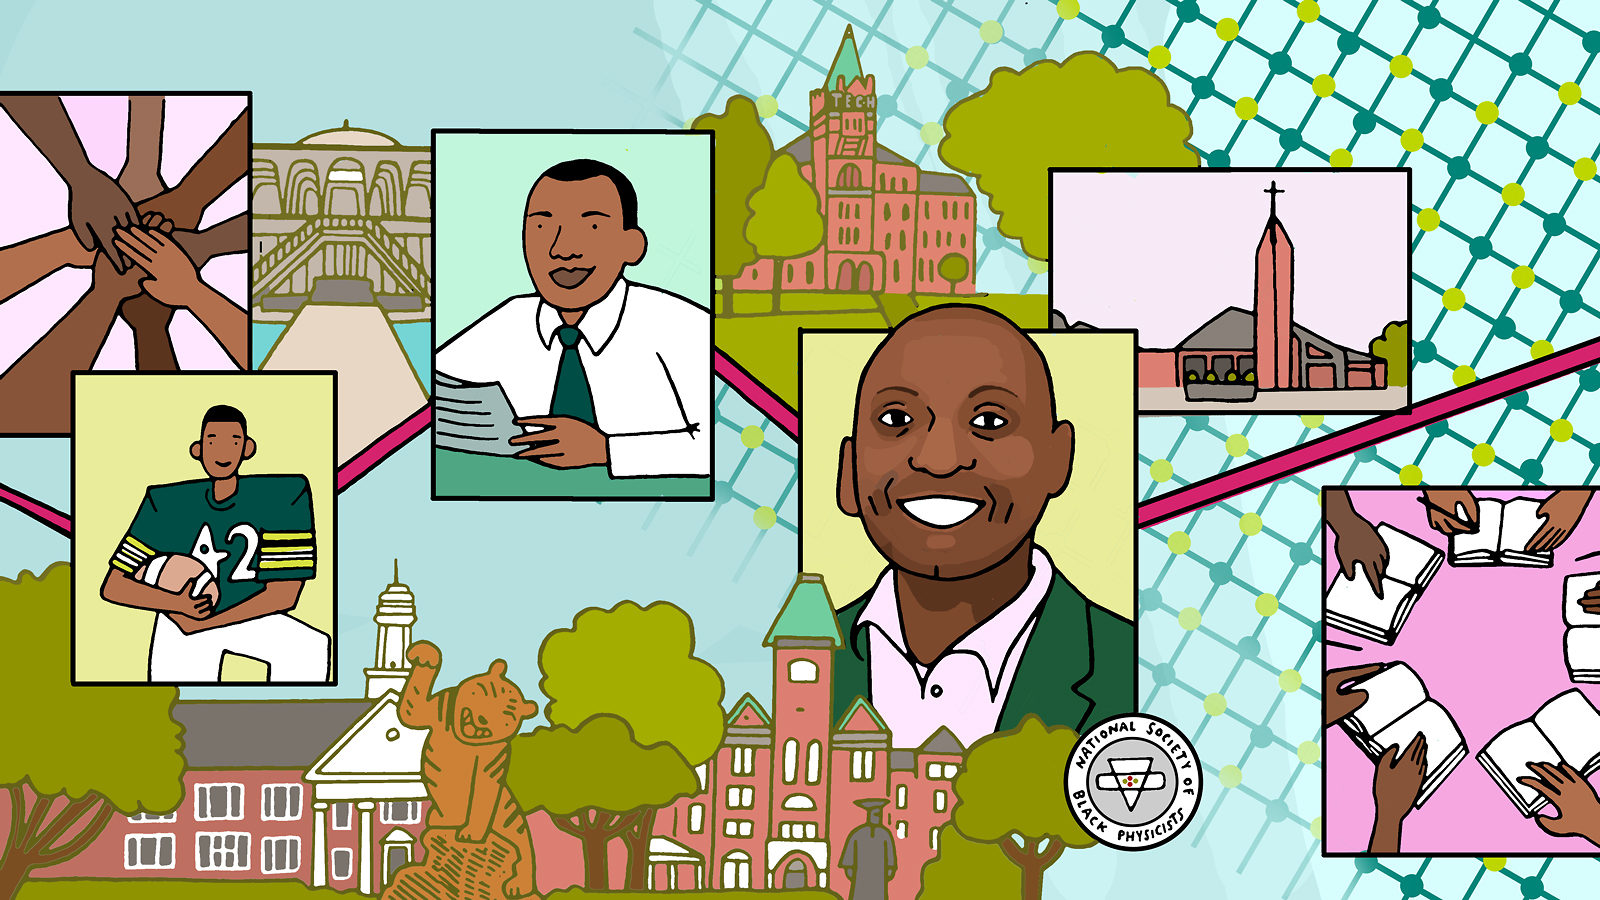 An illustration demonstrating many of the important facets of the life of Dr. Willie Rockward